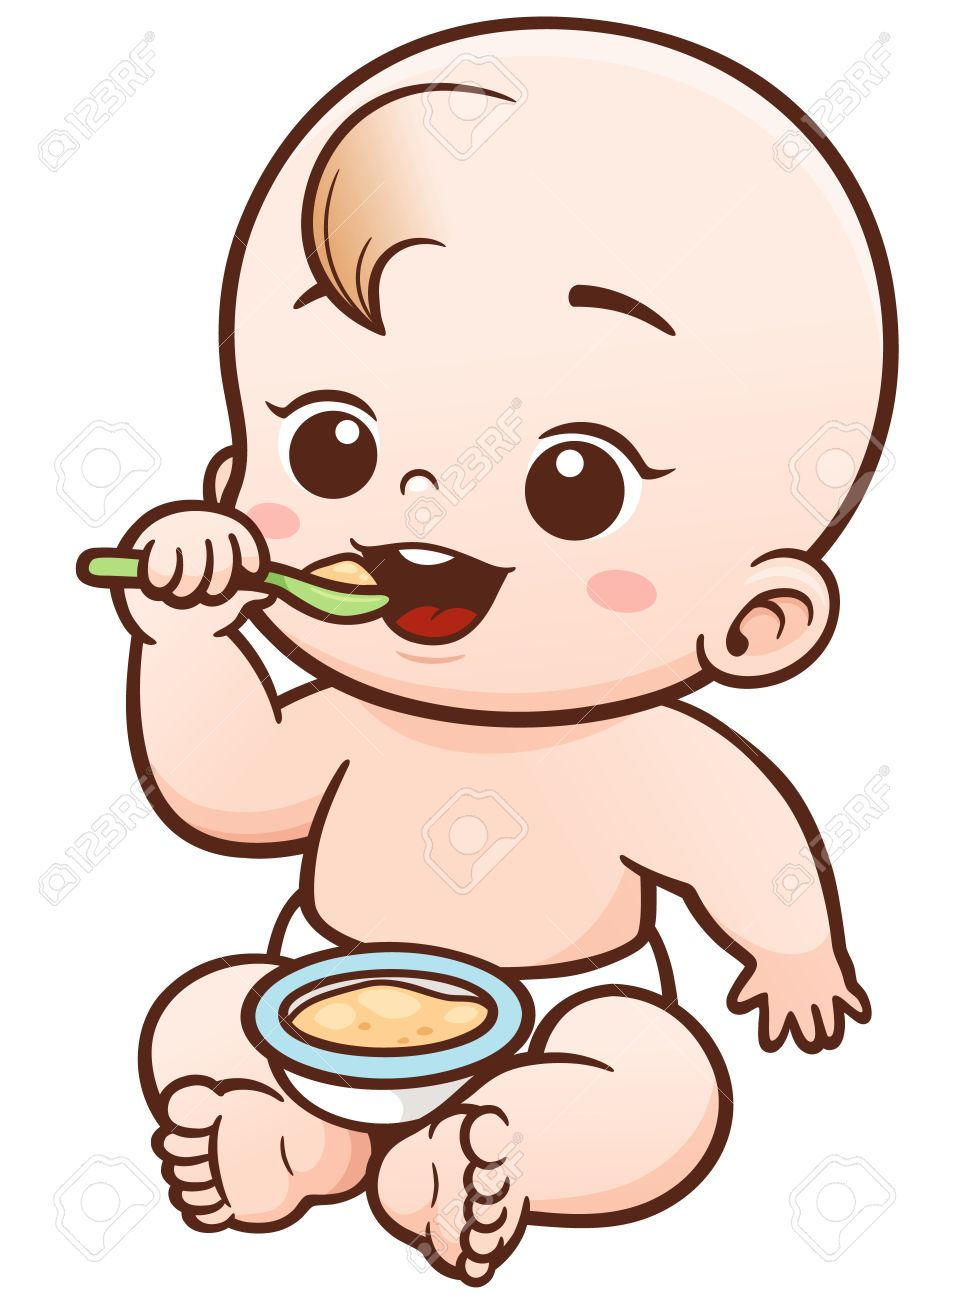 vector illustration of cartoon cute baby eating royalty free rh 123rf com baby vector psd baby vector file free quilting